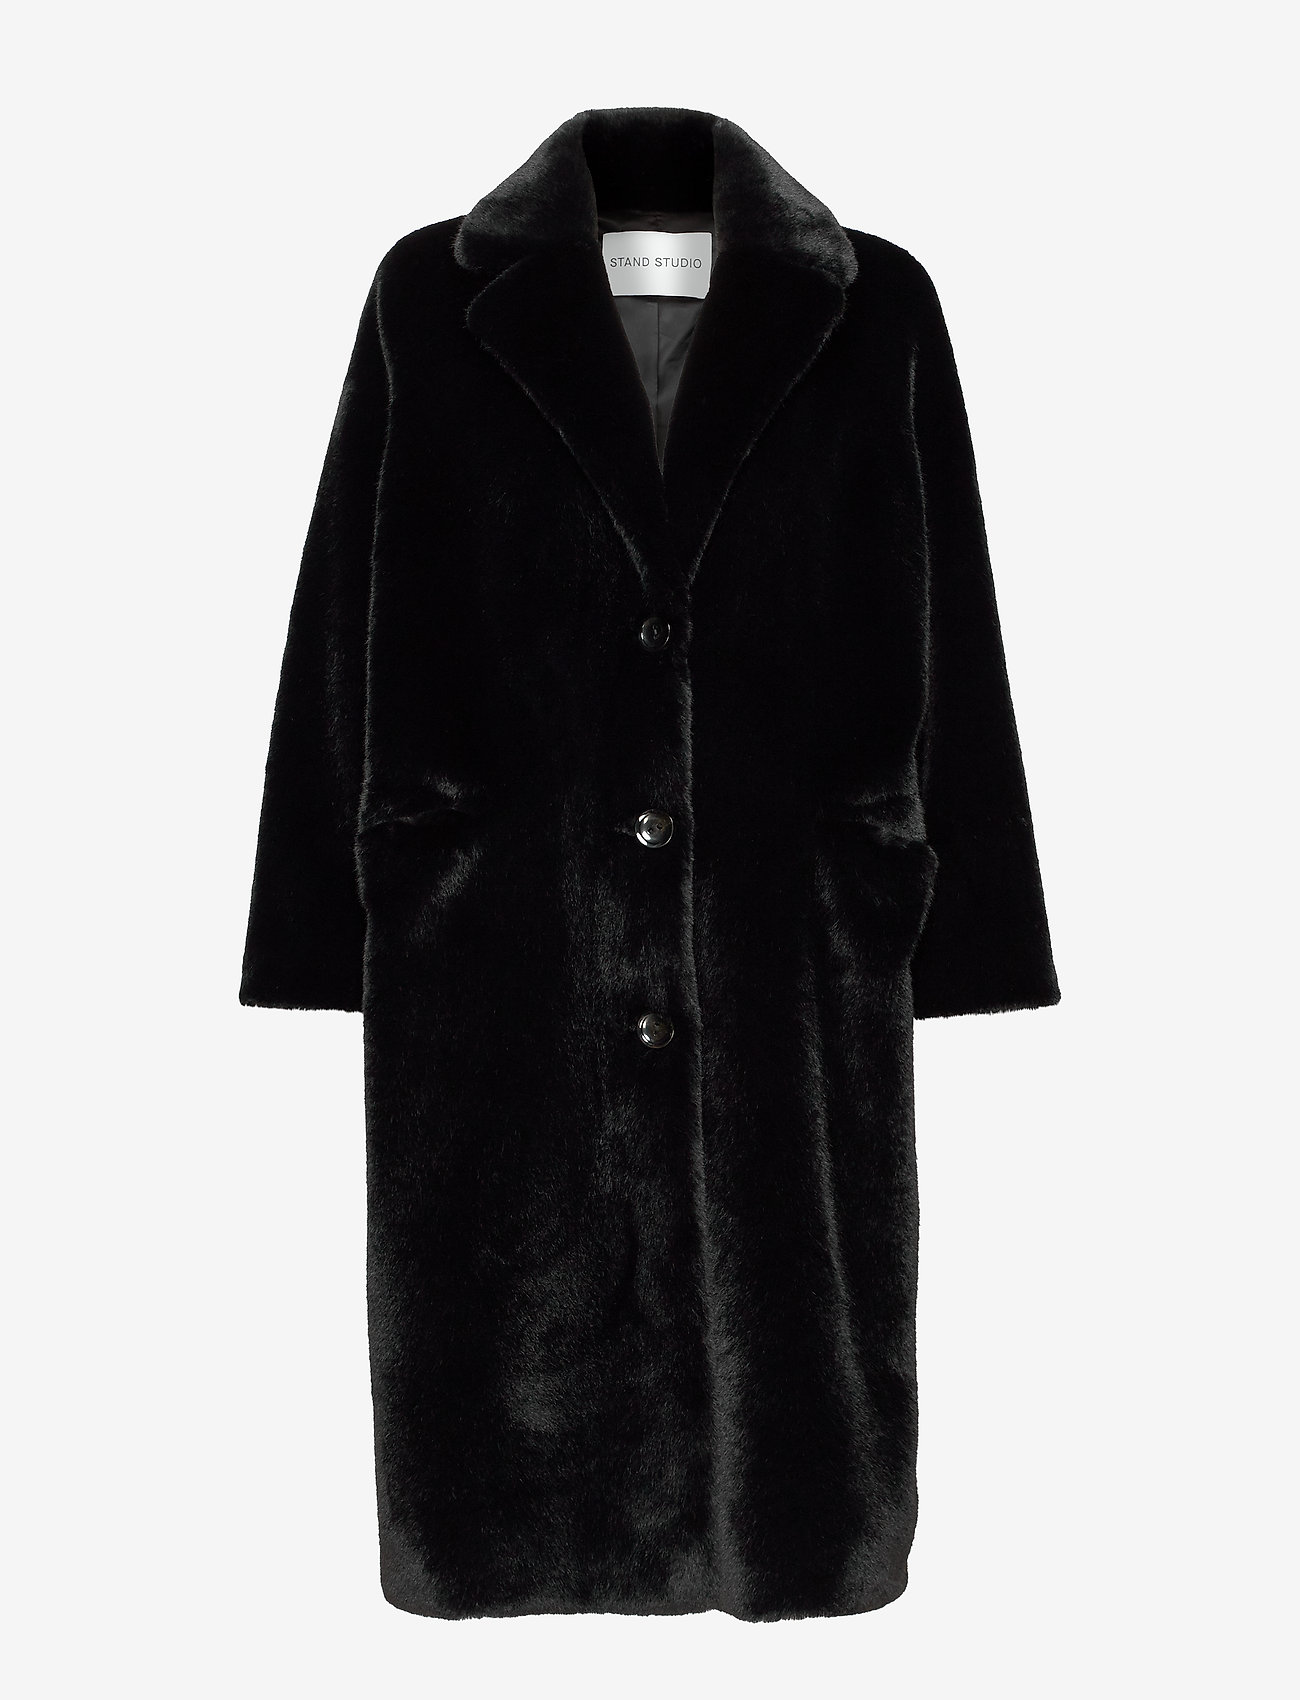 Stand Studio Theresa Coat - Jackor & Kappor Black